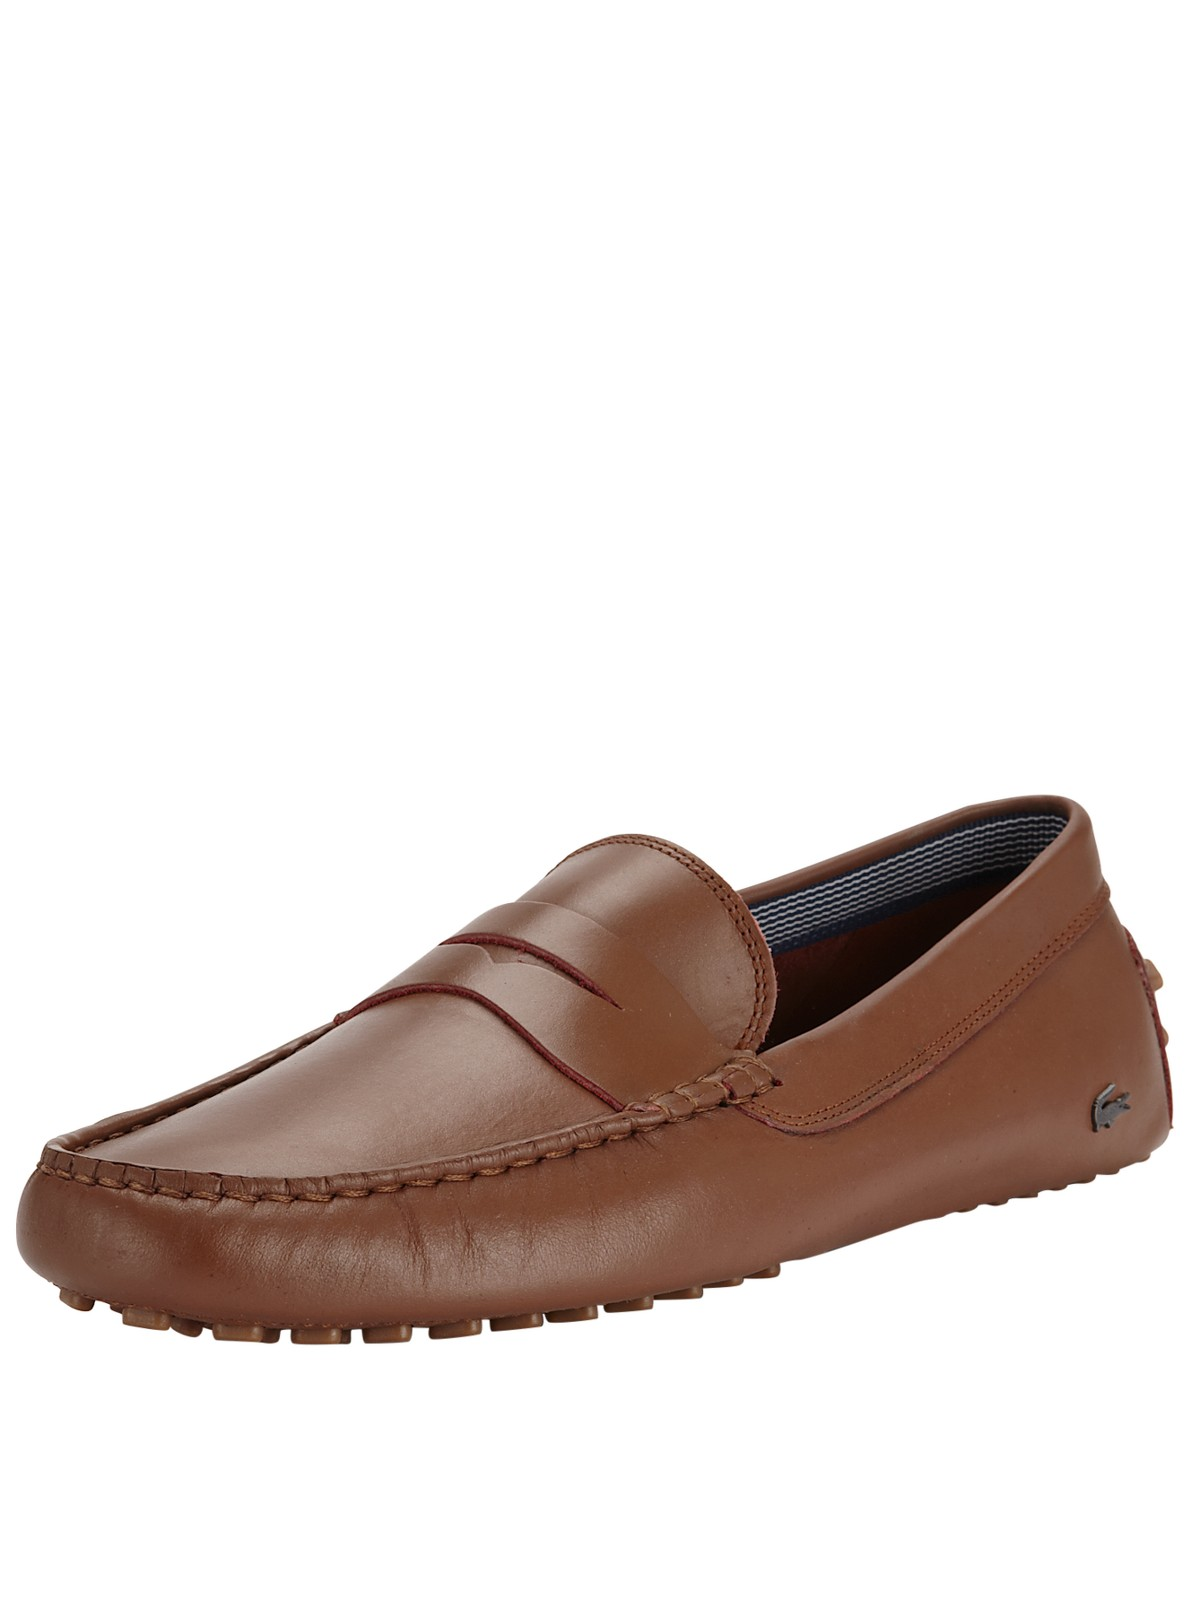 Mens Lacoste Brown Keelson Shoes